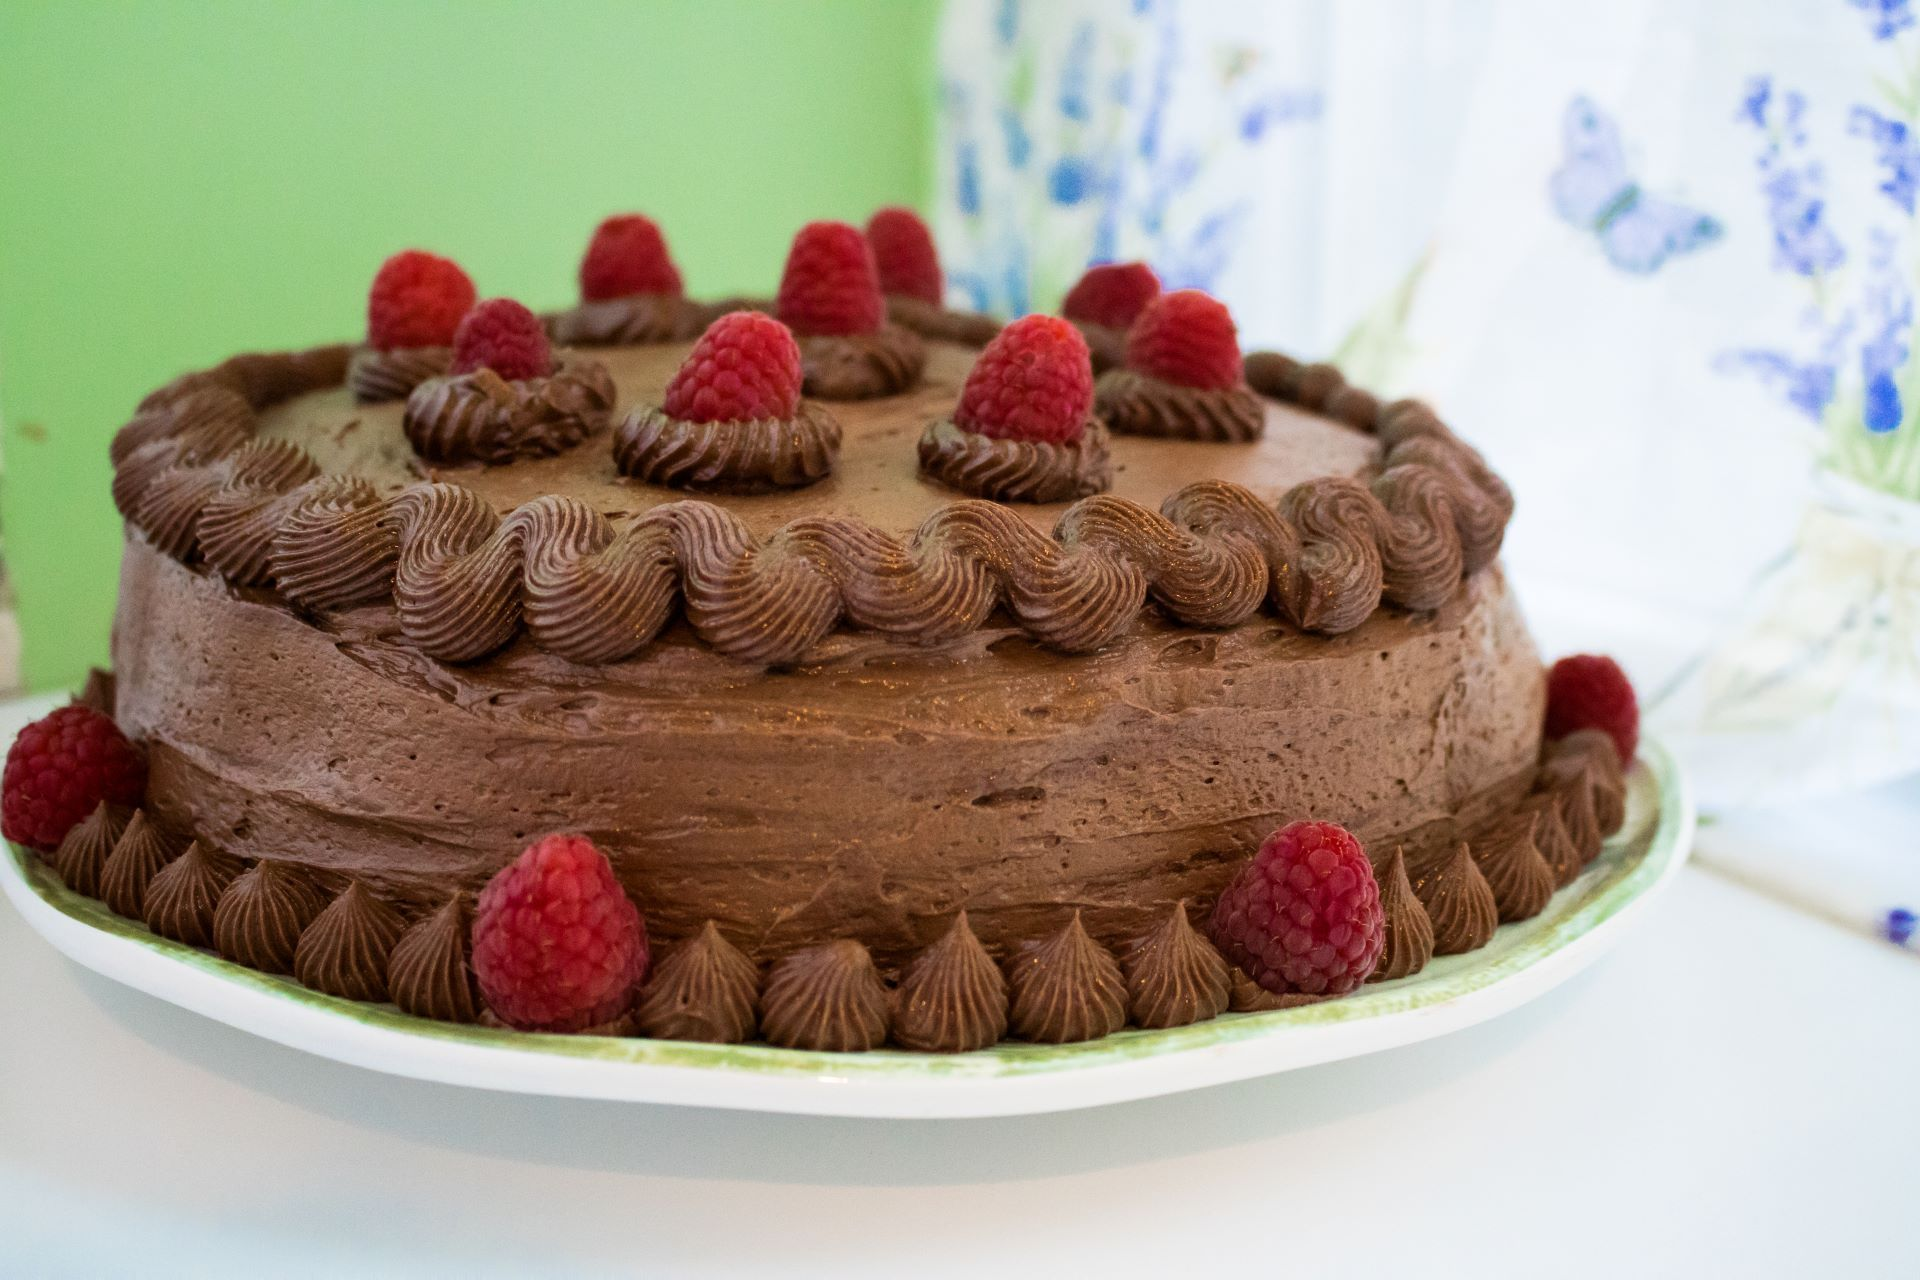 Read more about the article Chocolate Birthday Cake (Dairy Free with Gluten Free & Vegan Options!)